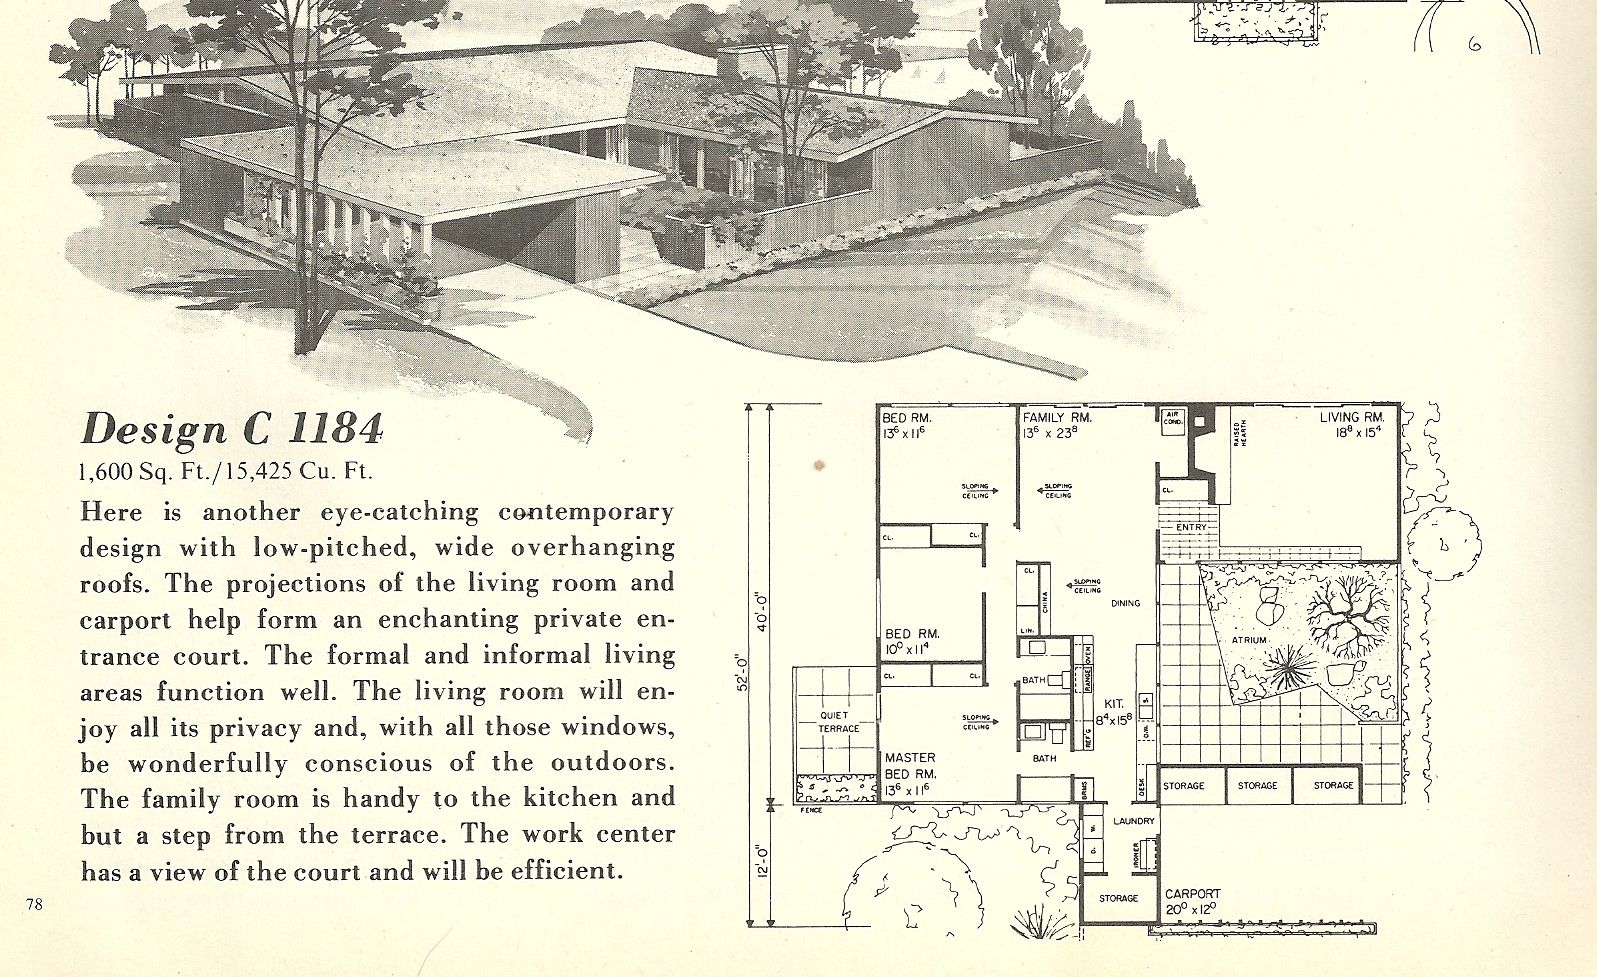 1000 images about Mid century house on Pinterest House plans